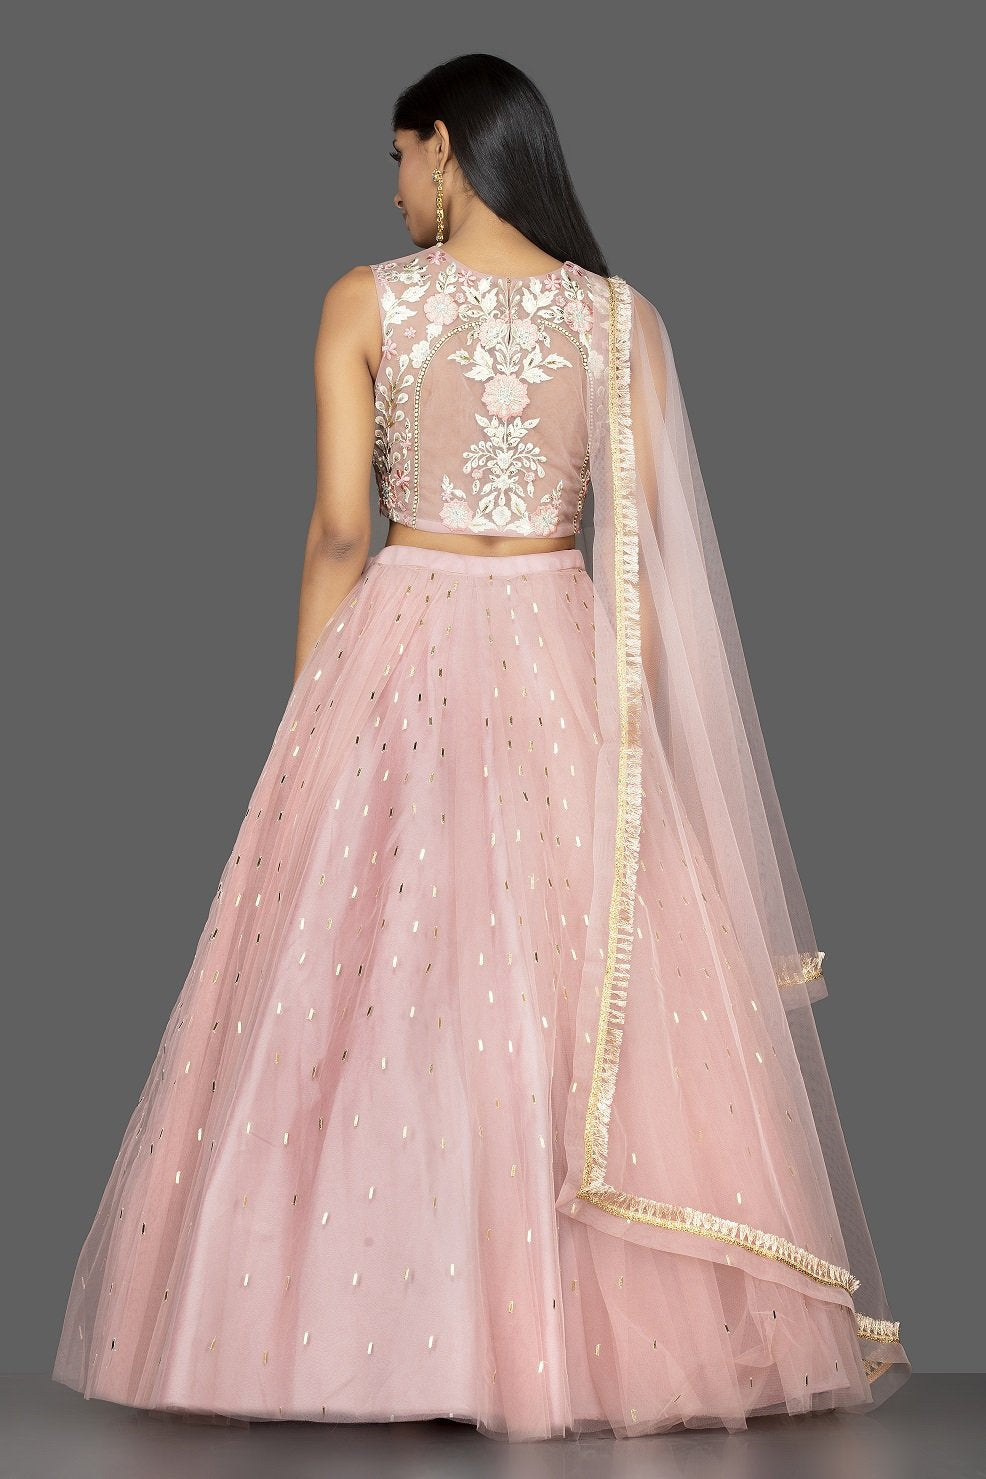 Buy stunning pale pink embroidered net lehenga online in USA with martching net dupatta. Look radiant on weddings and special occasions in splendid designer lehengas crafted with finest embroideries and stunning silhouettes from Pure Elegance Indian fashion boutique in USA.-back